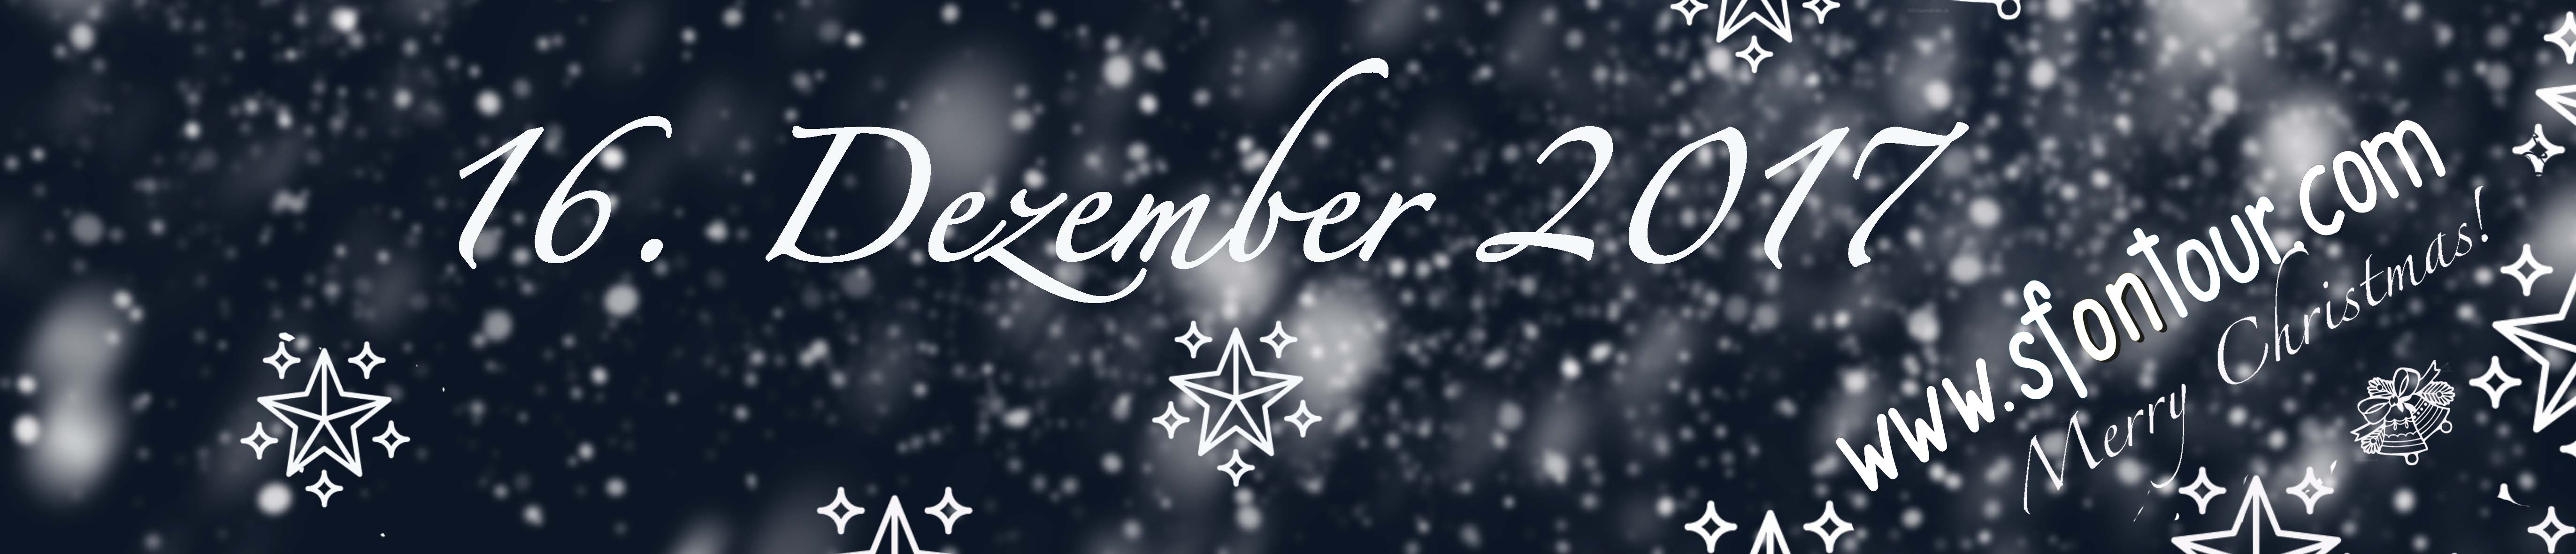 AdventCalendarBanner16D